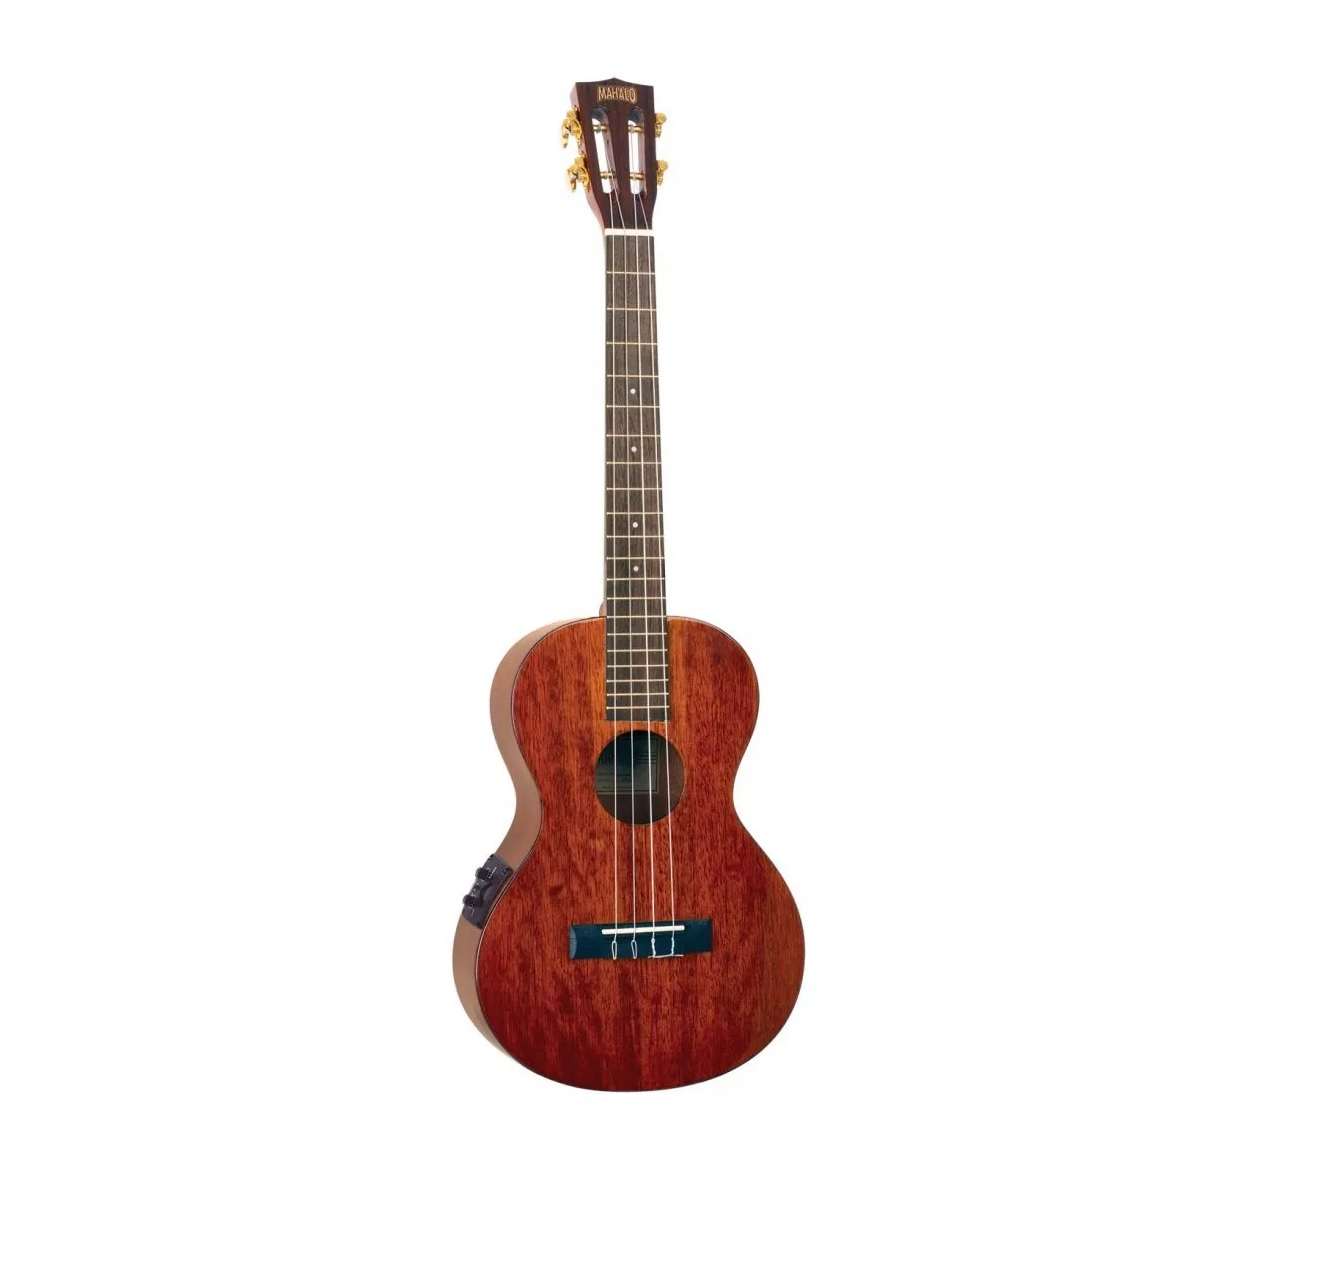 Mahalo Semi Acoustic Baritone Ukulele with accessories and Bag